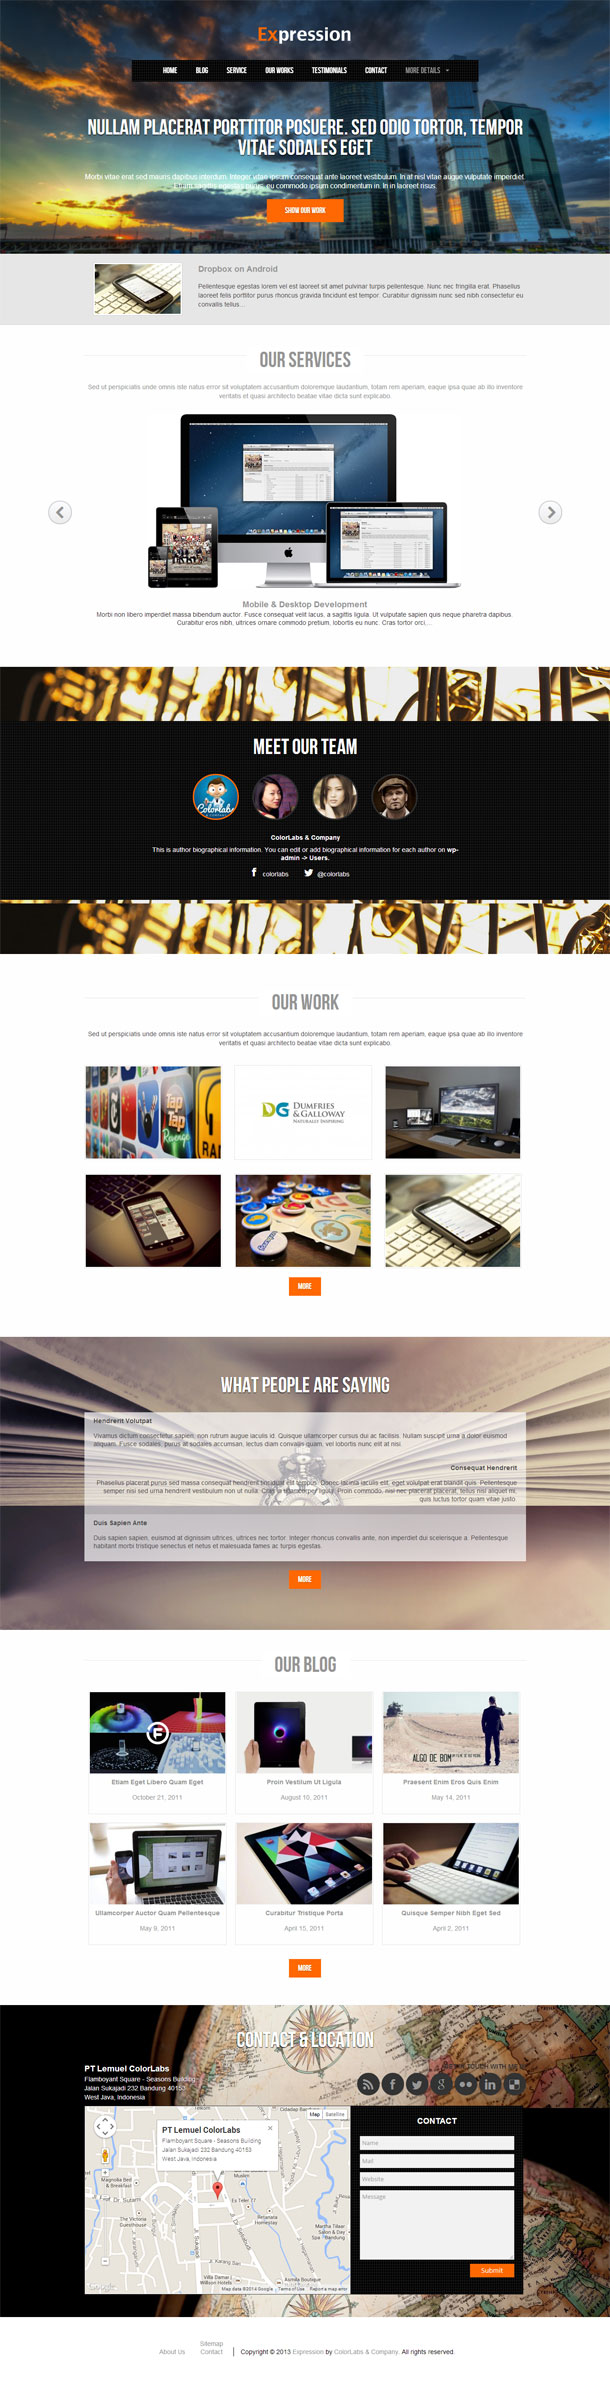 Expression Best WP Construction Company Theme Image